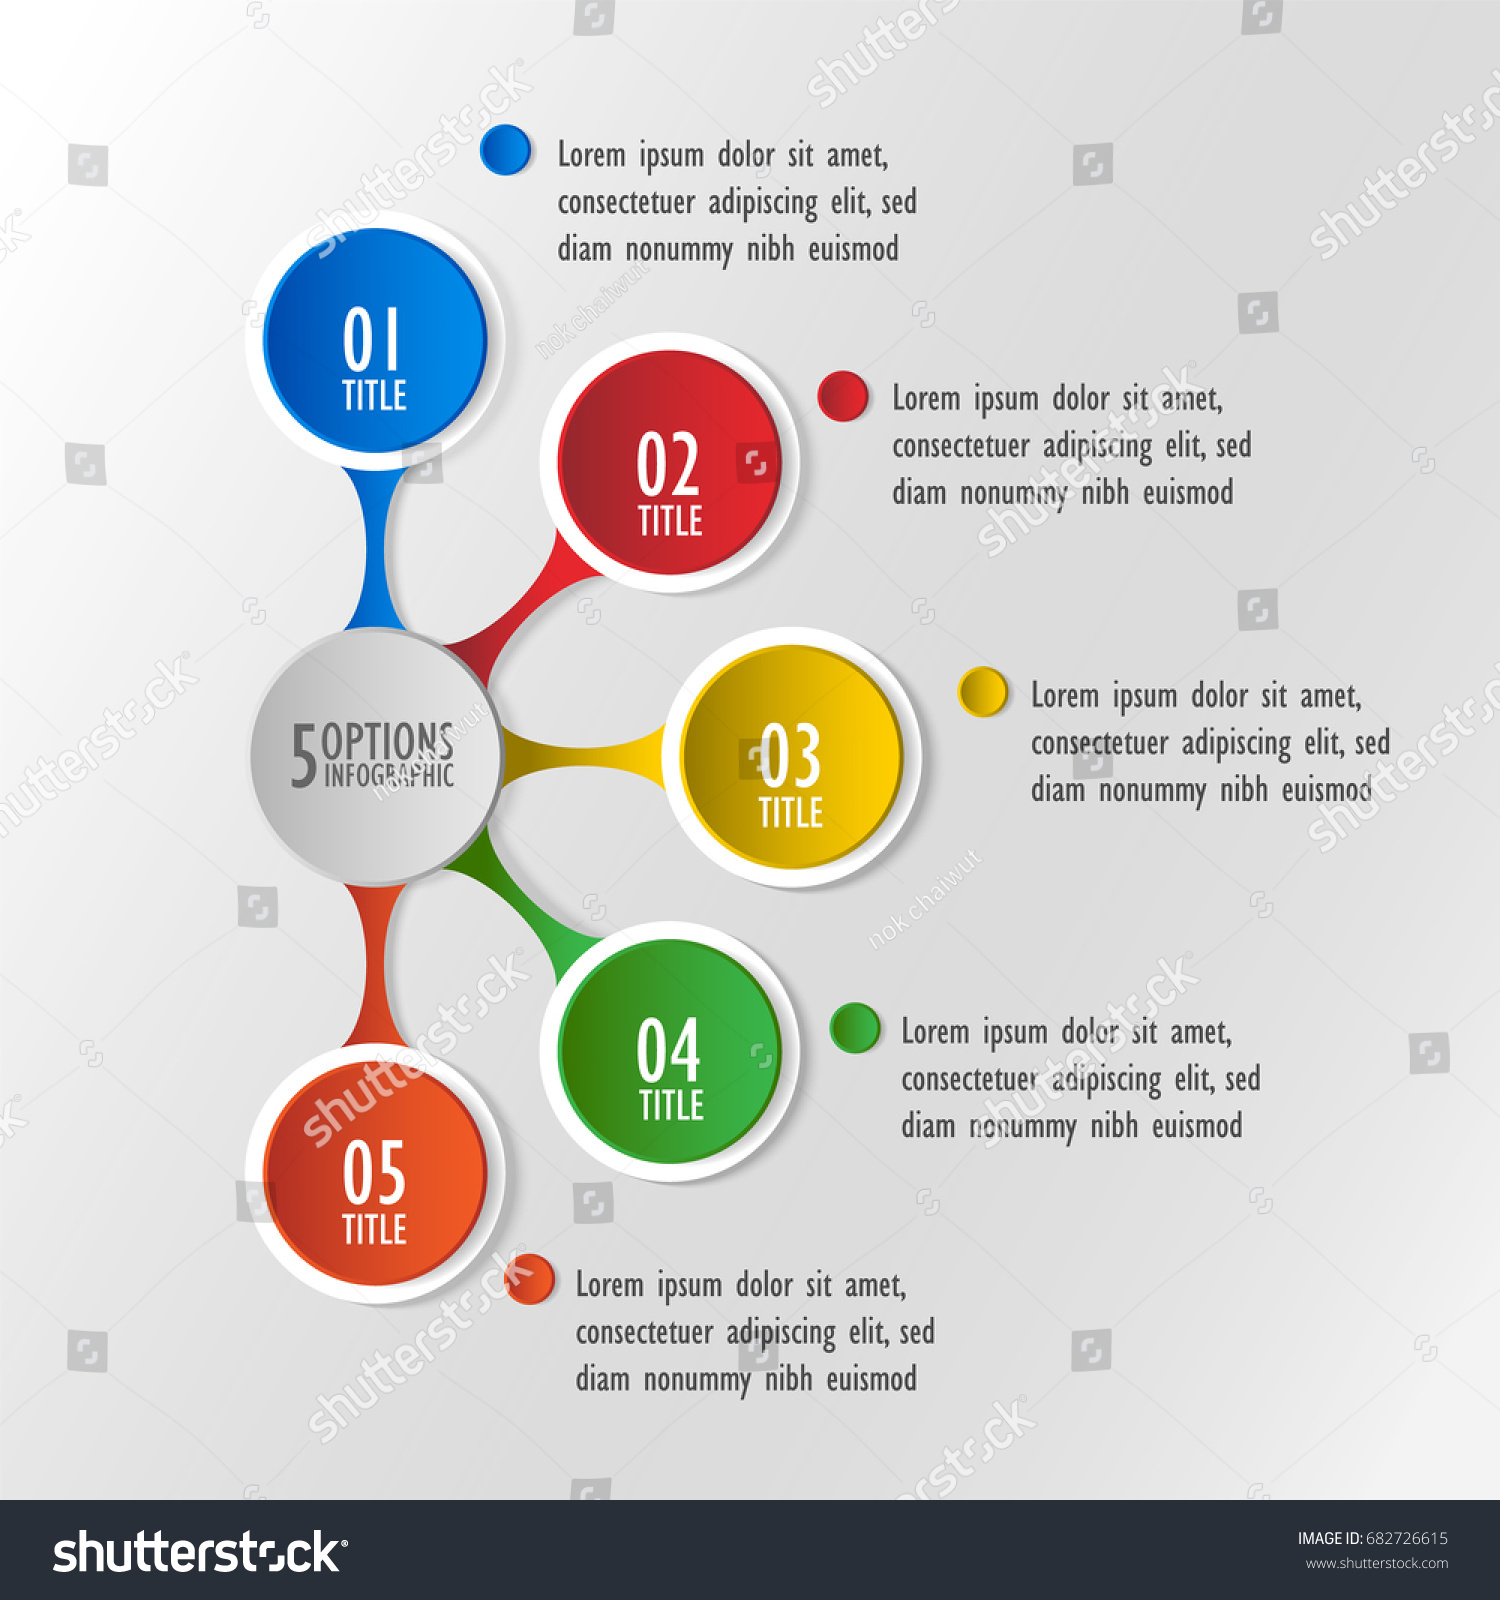 3d infographic template five options business stock vector 3d infographic template five options business circle diagram ccuart Image collections